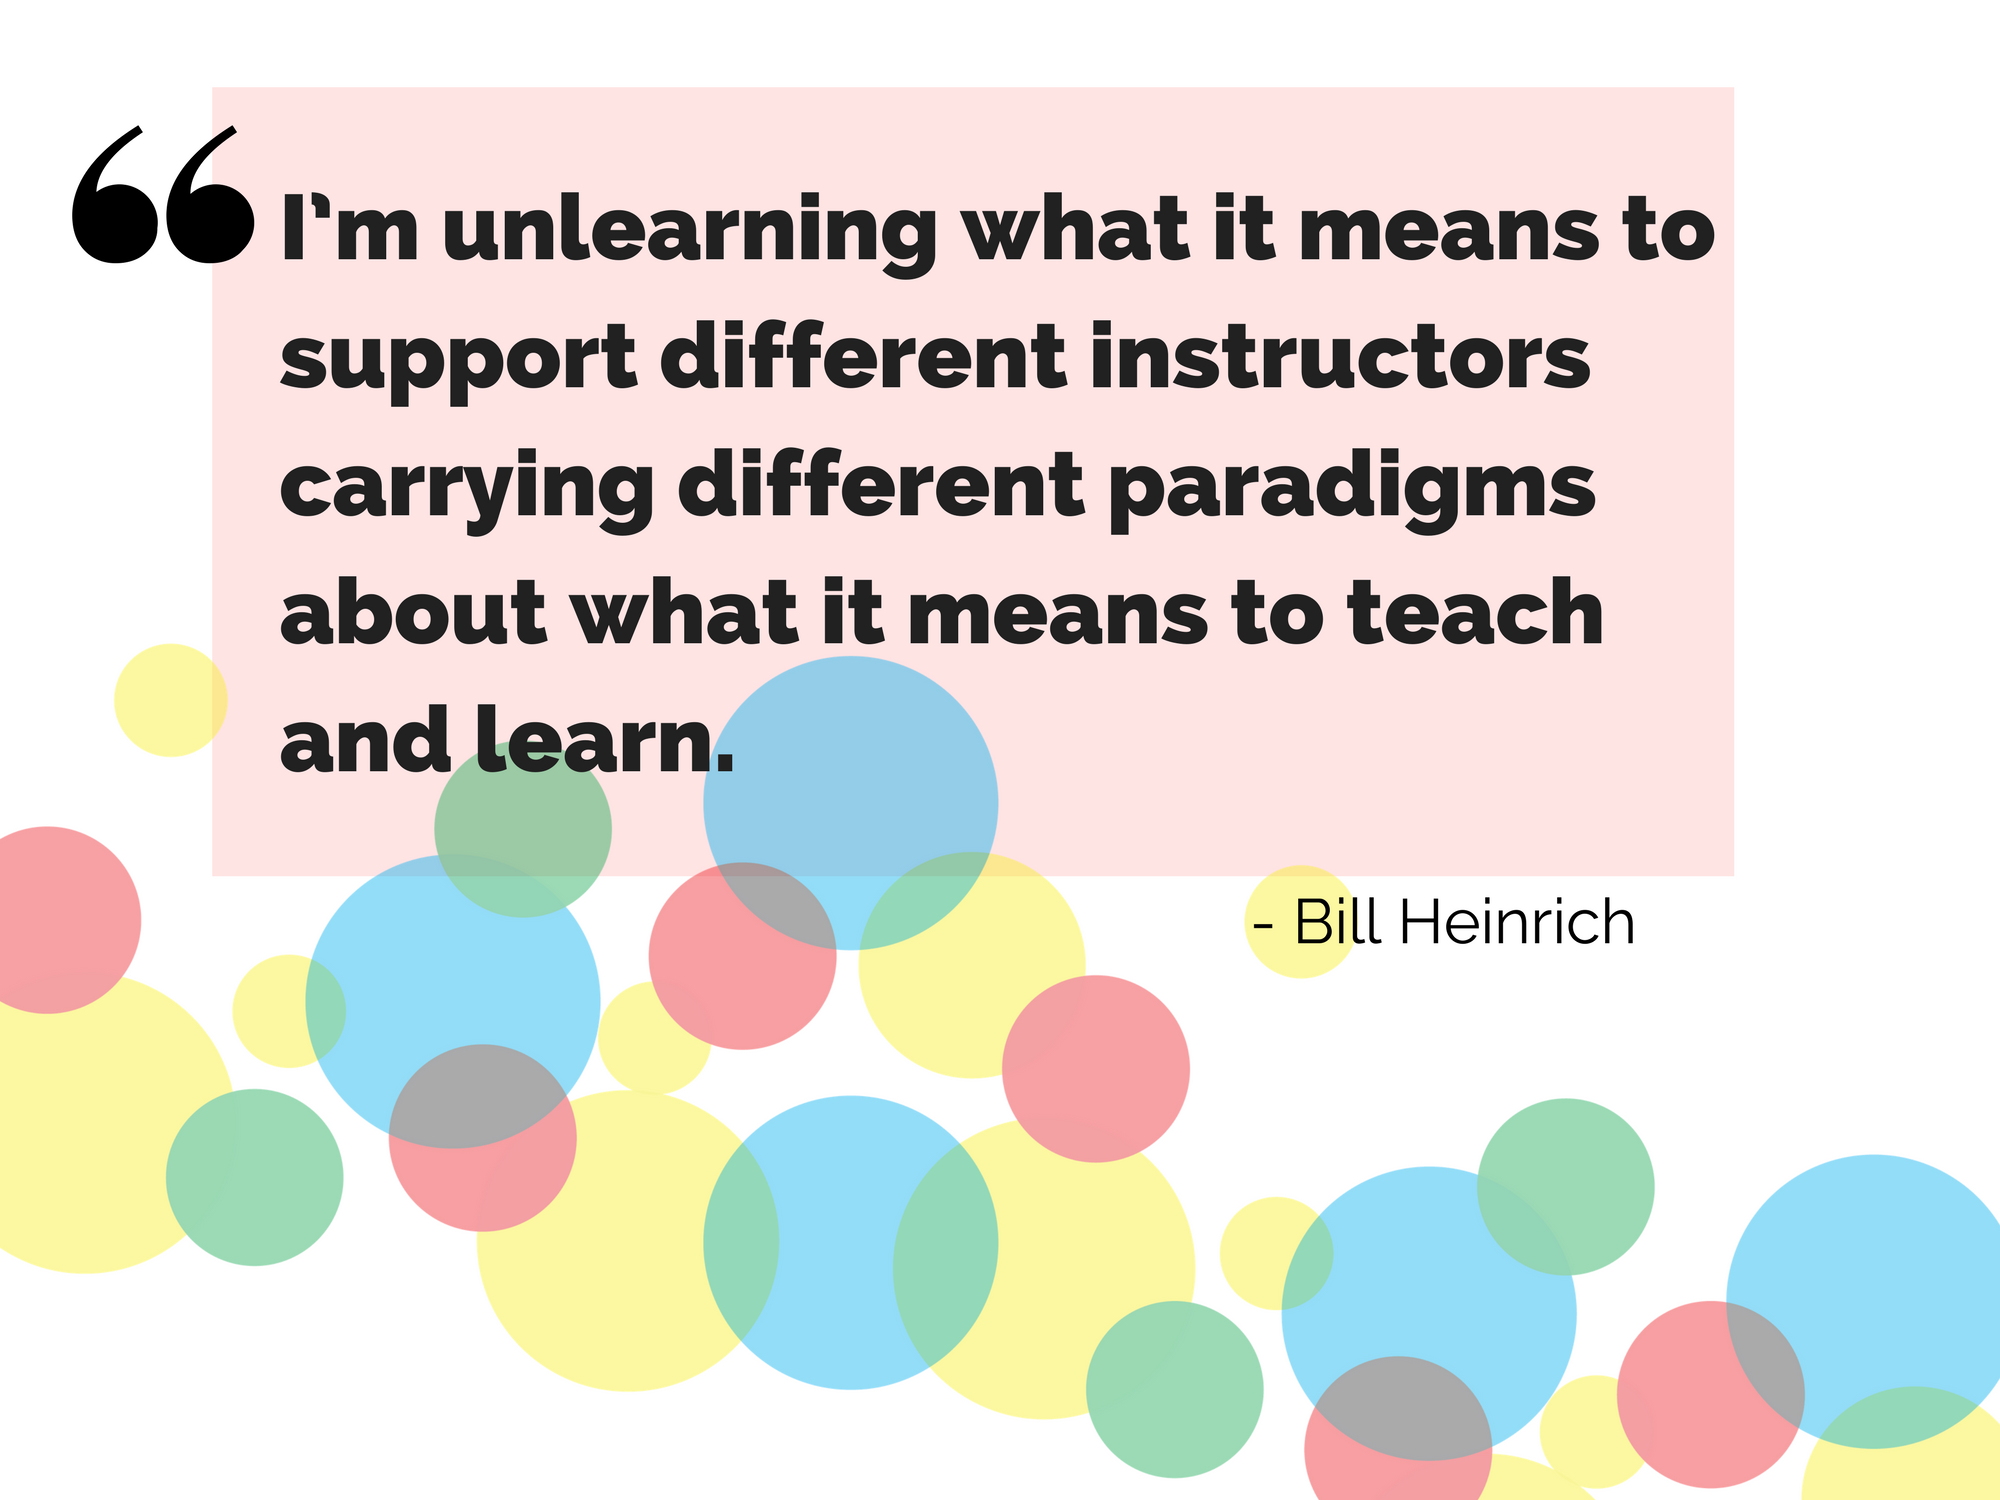 """I'm unlearning what it means to support different instructors carrying different paradigms about what it means to teach and learn."" - Bill Heinrich"